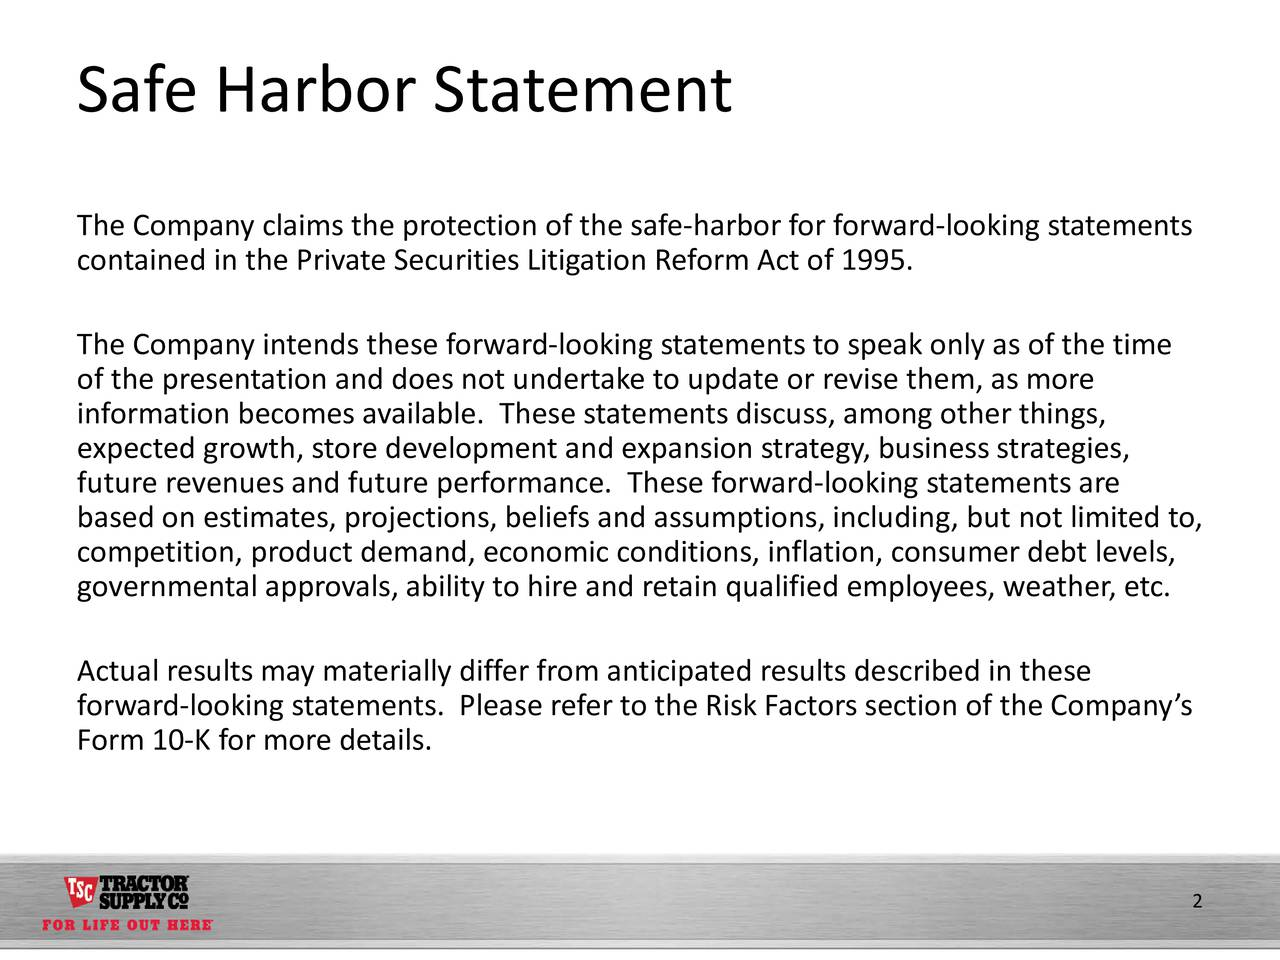 The Company claims the protection of the safe-harbor for forward-looking statements contained in the Private Securities Litigation Reform Act of 1995. The Company intends these forward-looking statements to speak only as of the time of the presentation and does not undertake to update or revise them, as more information becomes available. These statements discuss, among other things, expected growth, store development and expansion strategy, business strategies, future revenues and future performance. These forward-looking statements are based on estimates, projections, beliefs and assumptions, including, but not limited to, competition, product demand, economic conditions, inflation, consumer debt levels, governmental approvals, ability to hire and retain qualified employees, weather, etc. Actual results may materially differ from anticipated results described in these forward-looking statements. Please refer to the Risk Factors section of the Companys Form 10-K for more details. 2